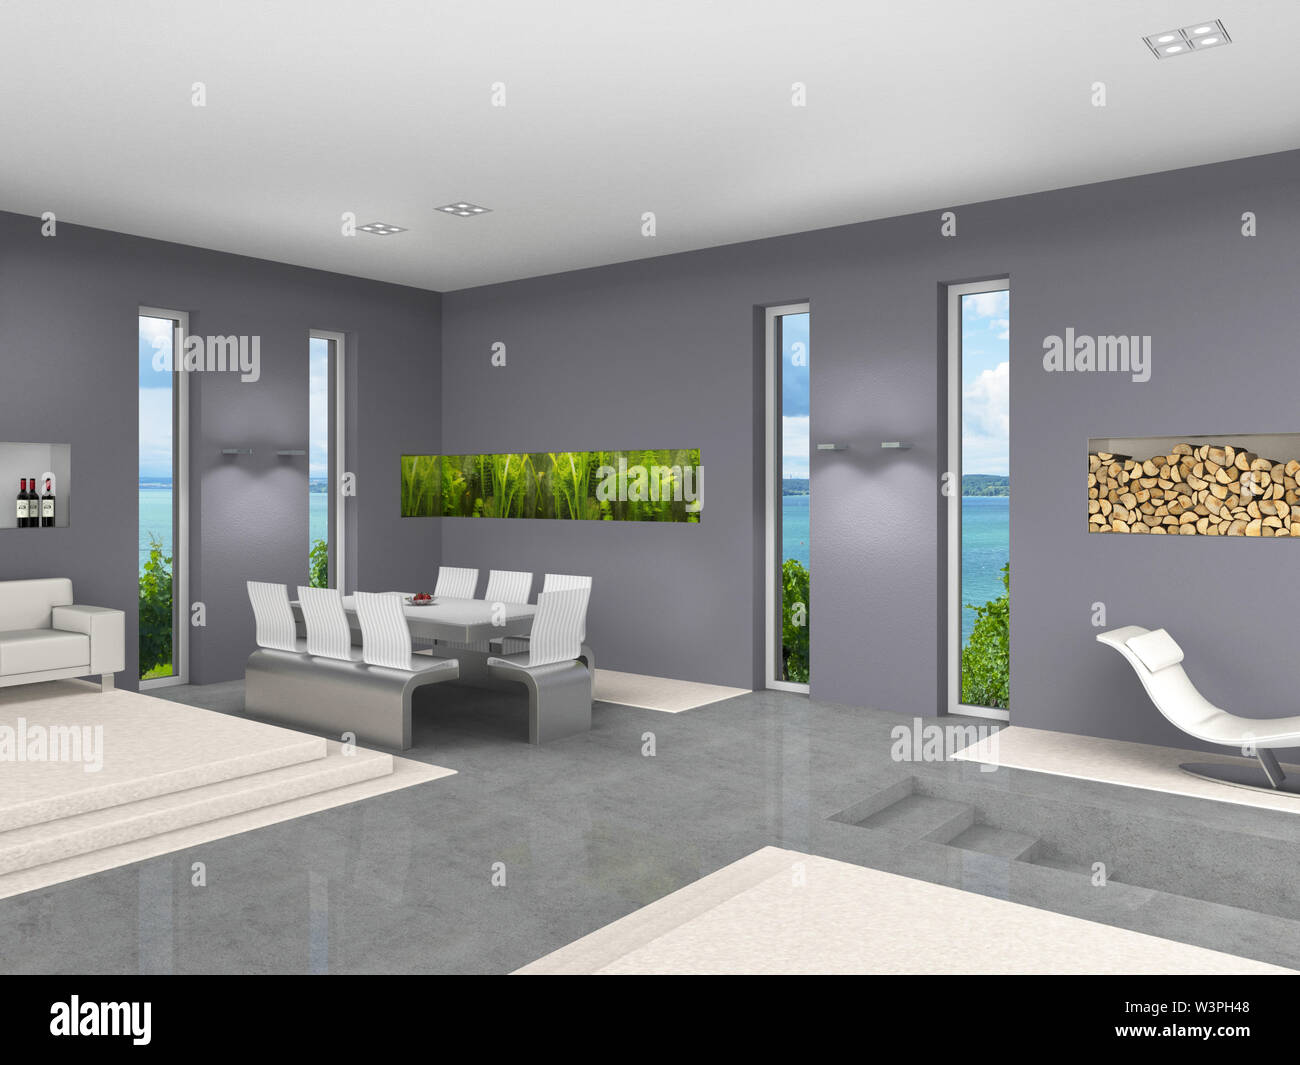 Modern Interior Design With Open Living And Dining Room Aquarium And Upright Windows Stock Photo Alamy